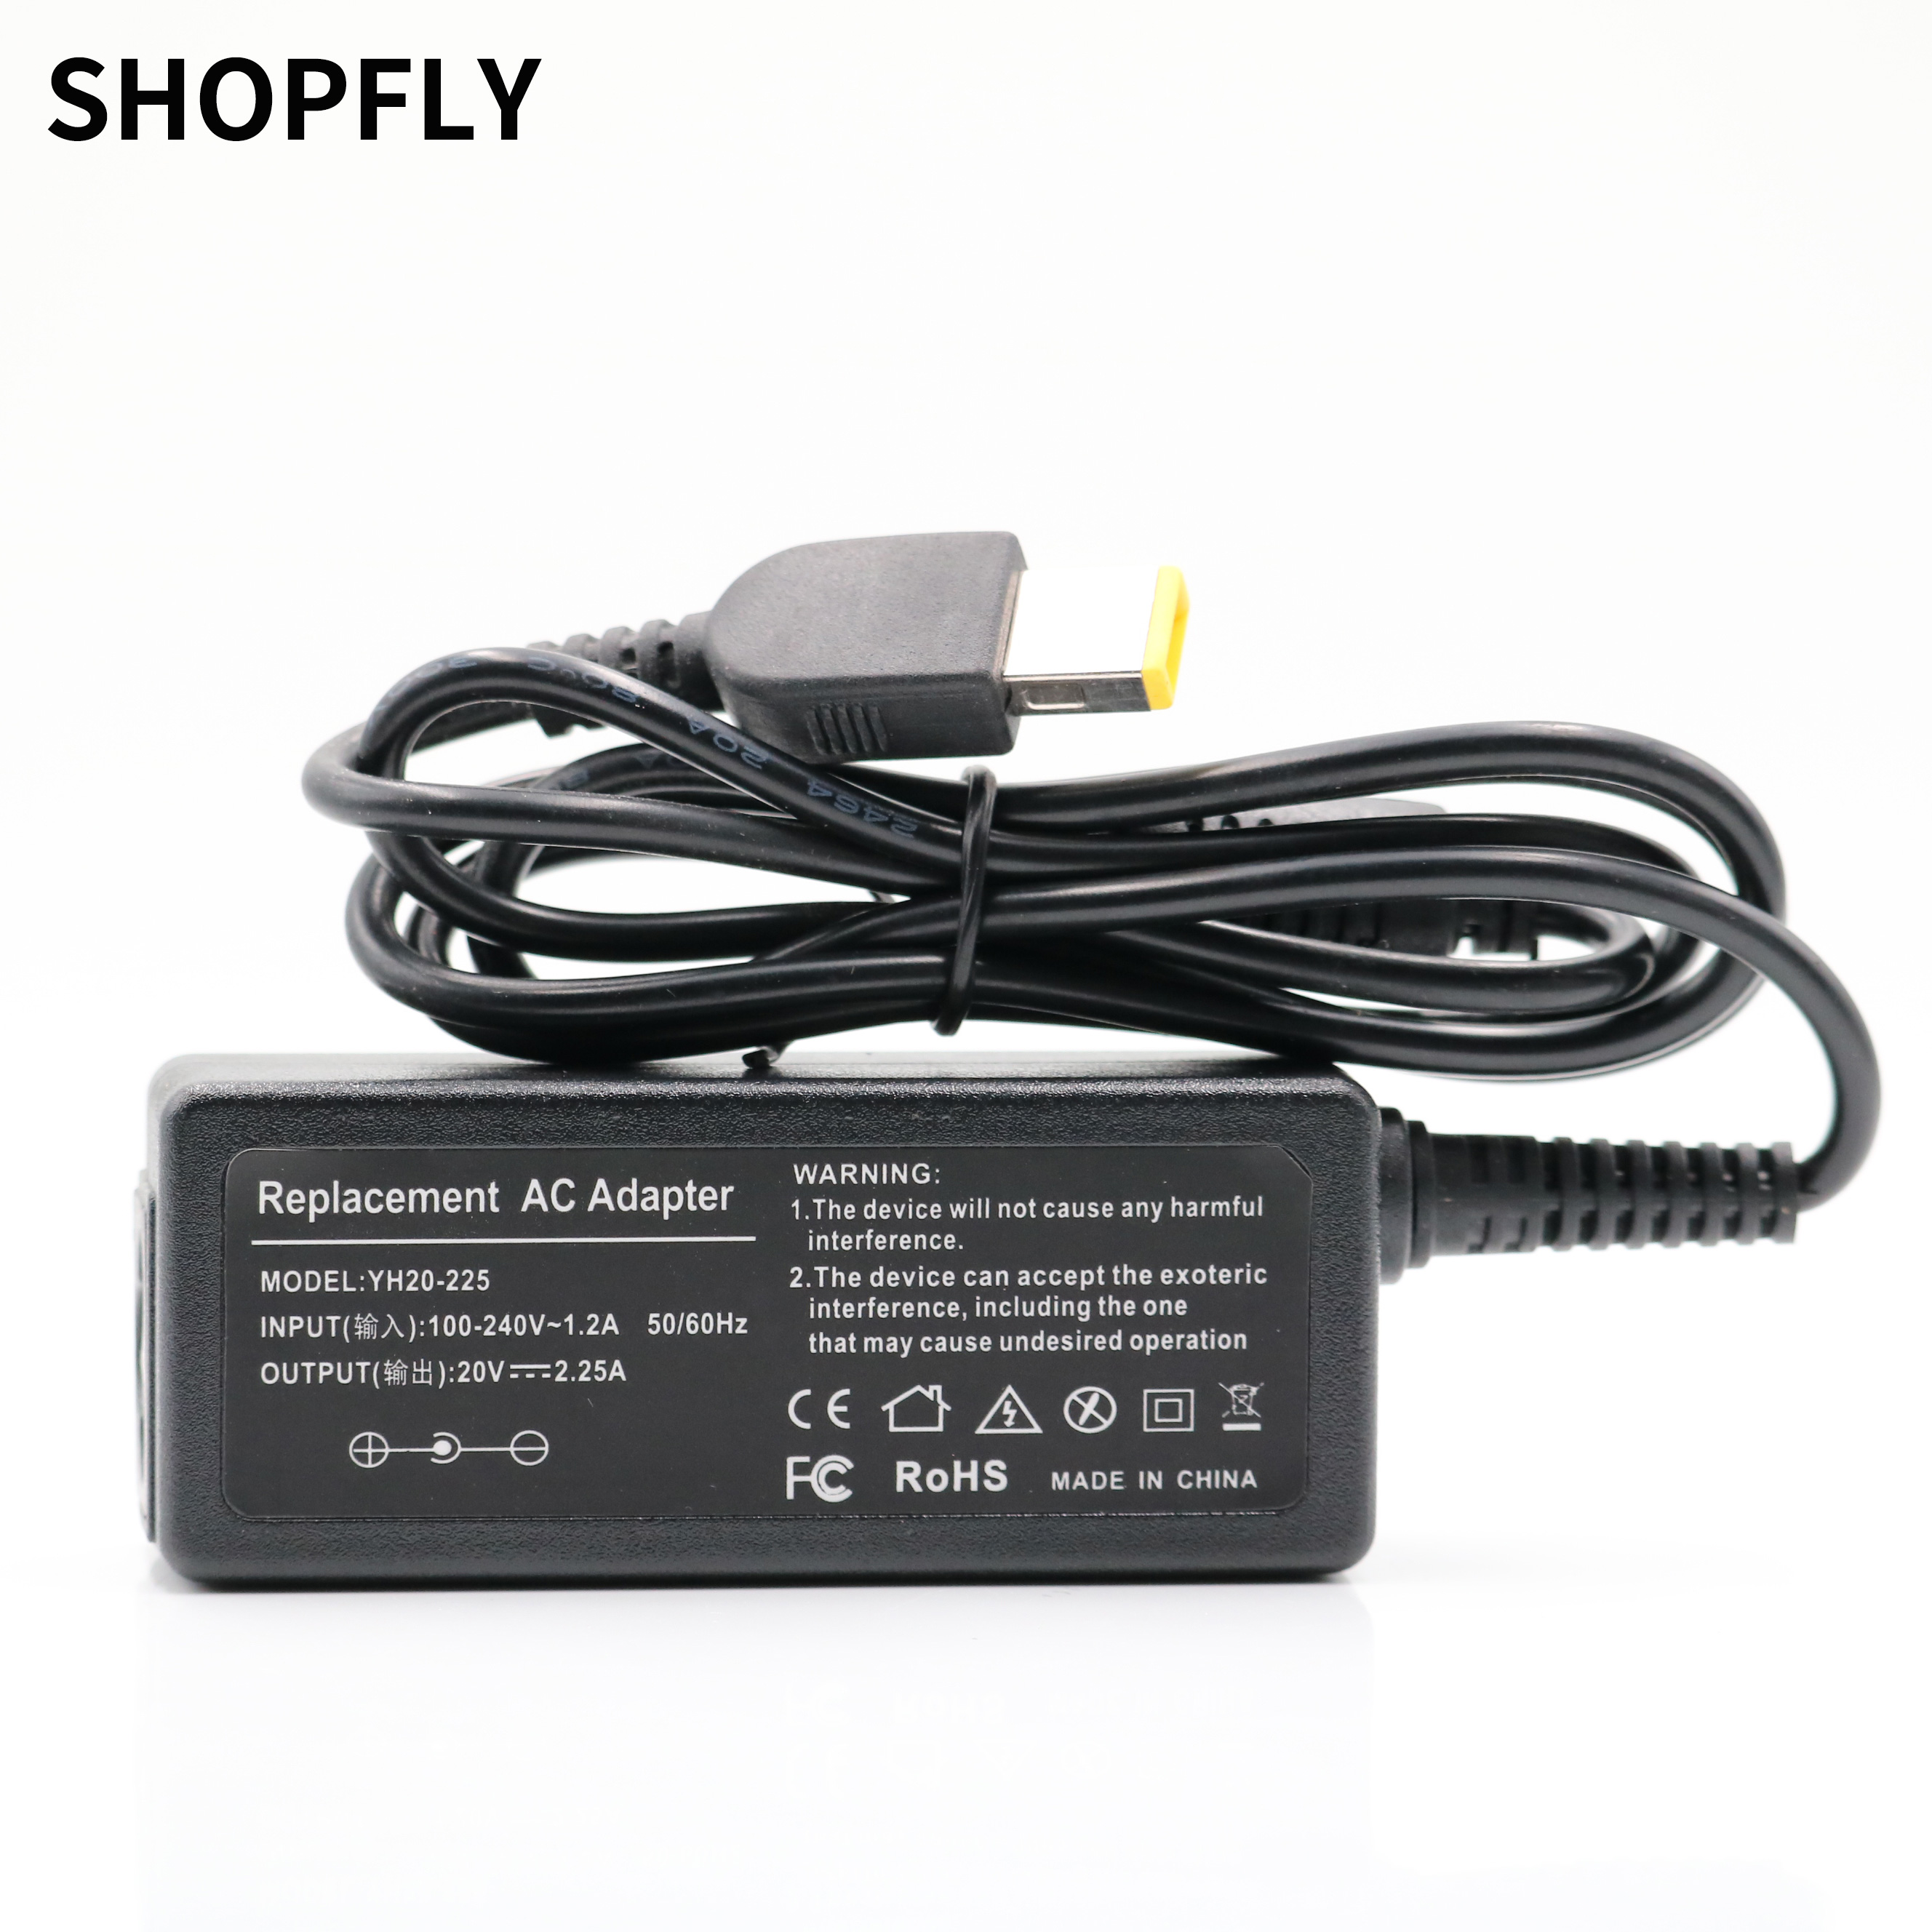 45W Laptop Ac Power Adapter Charger For Lenovo Yoga 2 11 11S S1 K2450 T431S X230 X240 X240S 20V 2.25A Notebook Charger